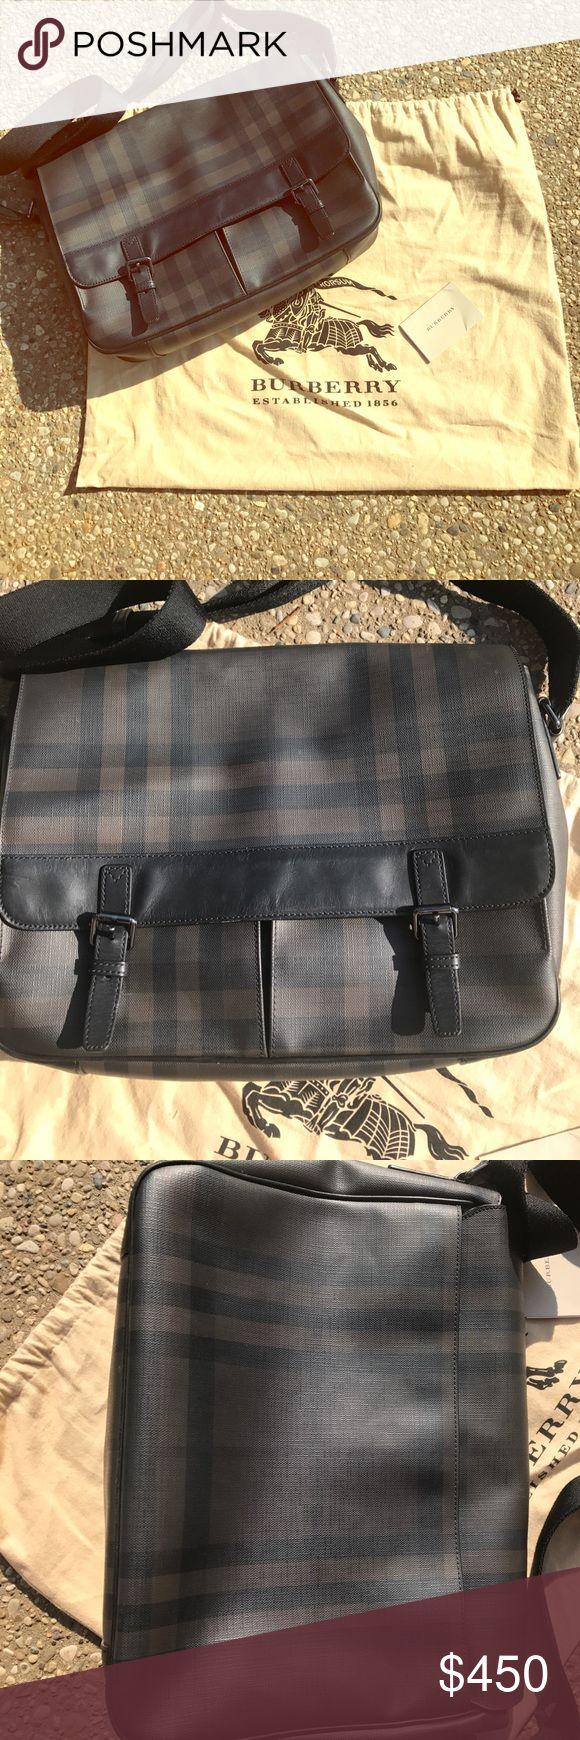 ✳️ Authentic Burberry Messenger bag ✳️ Great condition. Dark classic Burberry print on whole bag in crossgrain leather and accents of smooth leather. Long adjustable strap and gun metal hardware. Burberry Bags Messenger Bags